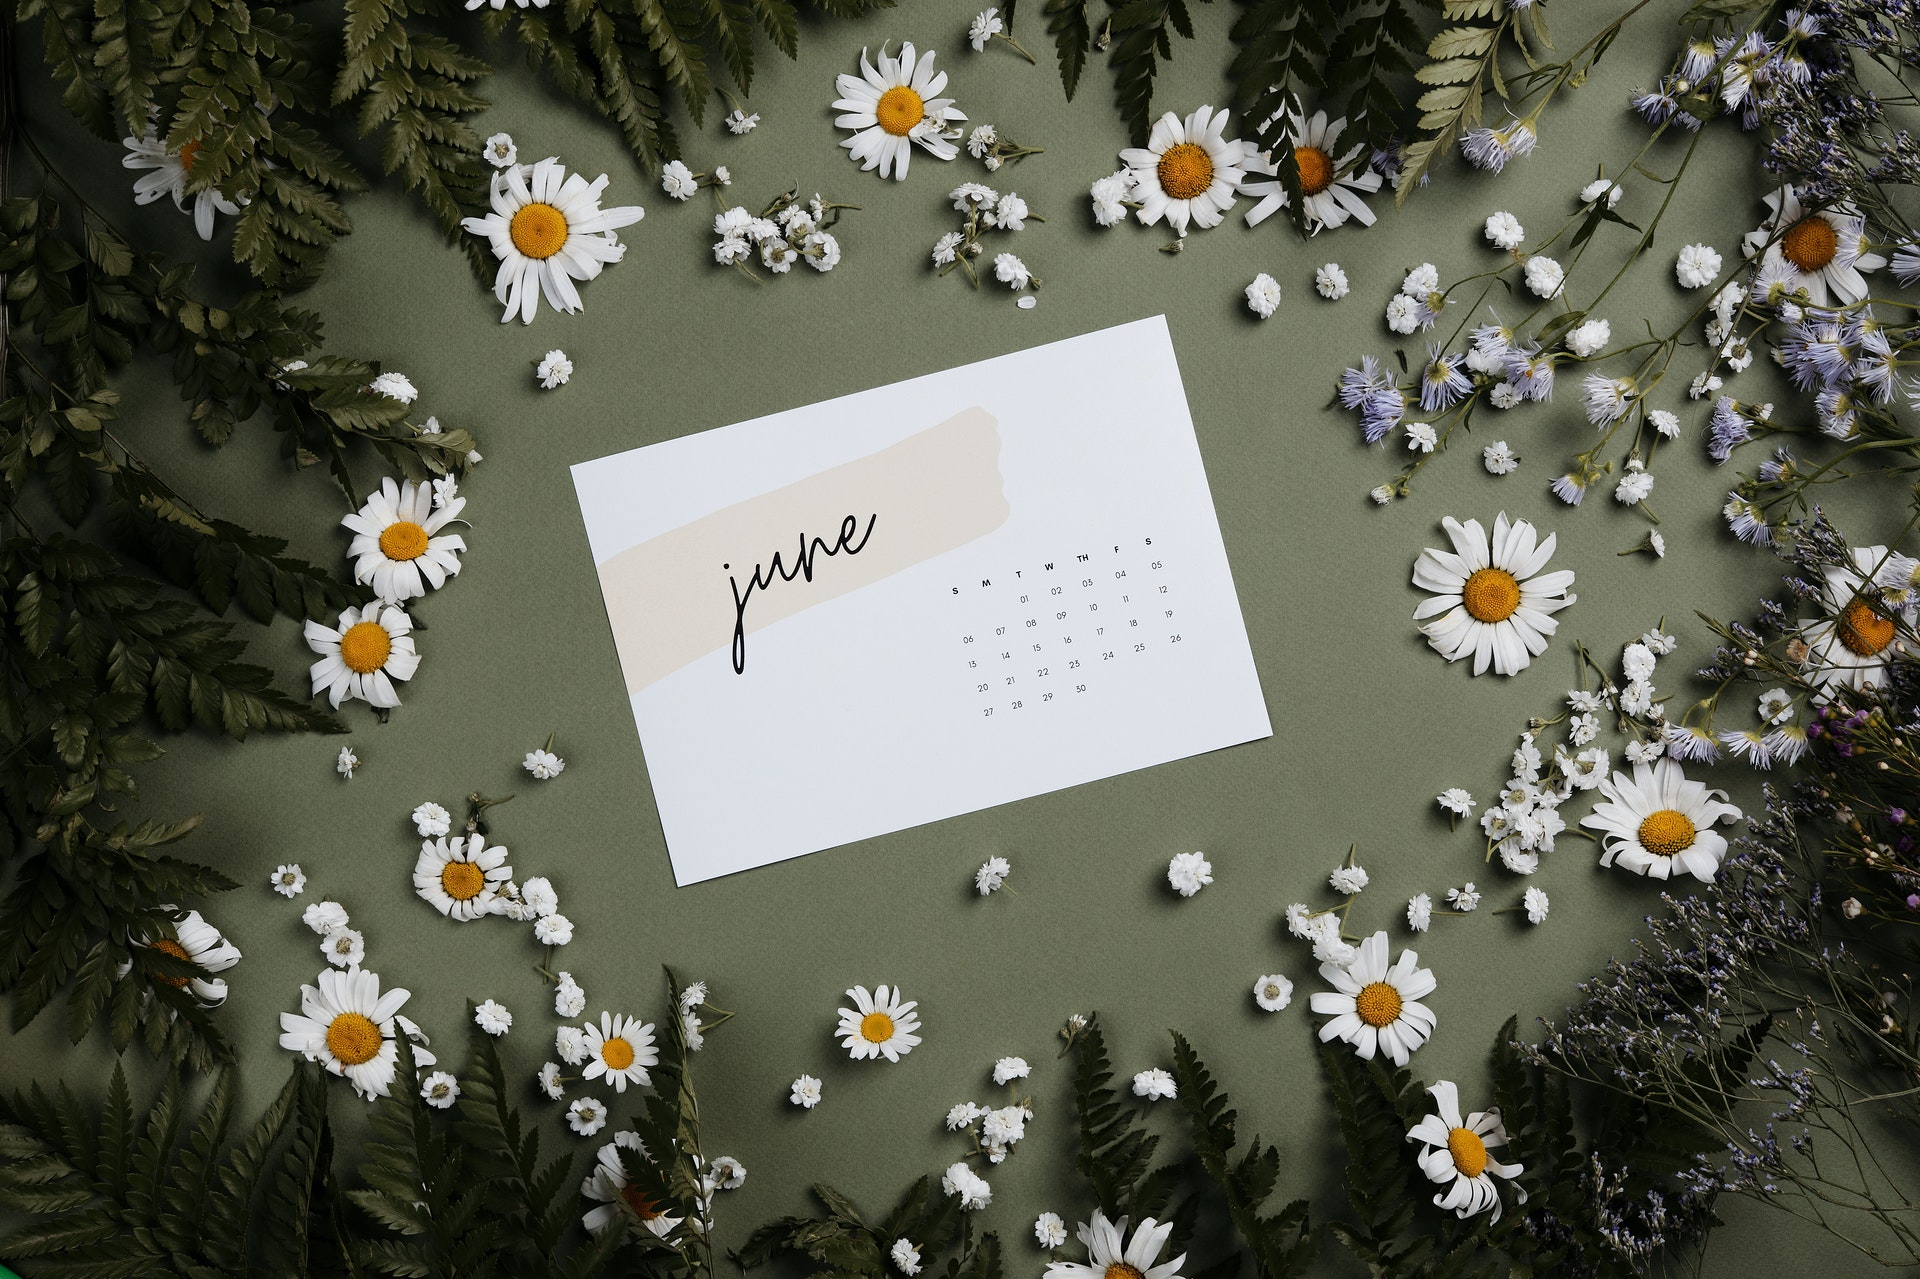 The word 'June' is written on a white piece of paper, laying on a green background surrounded by daisies and leaves. Photo by Boris Pavlikovsky from Pexels